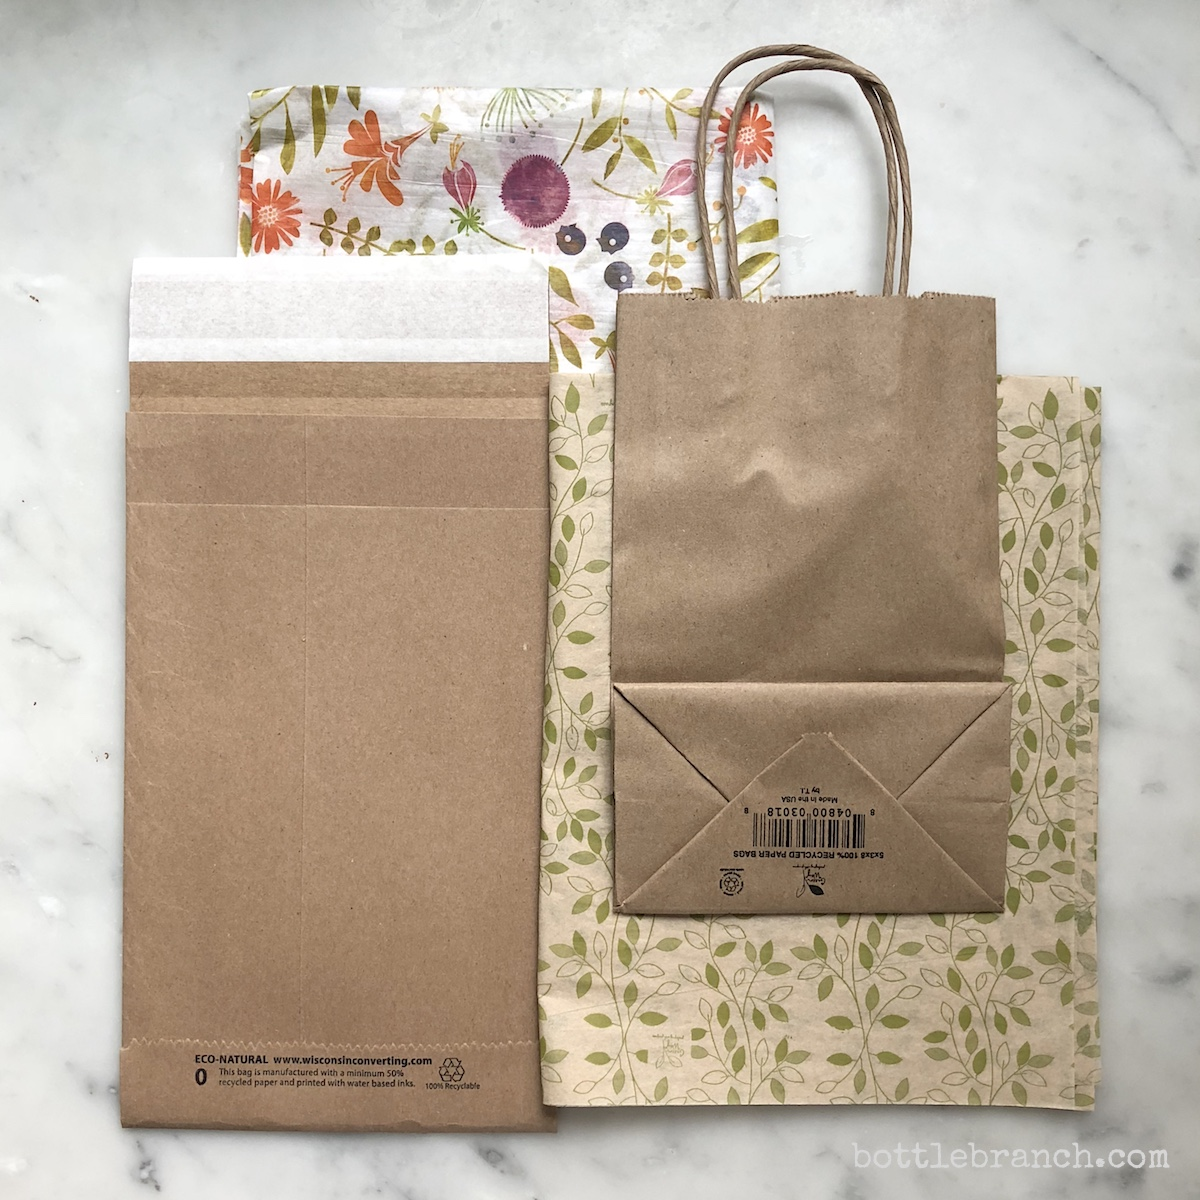 recycled paper packaging